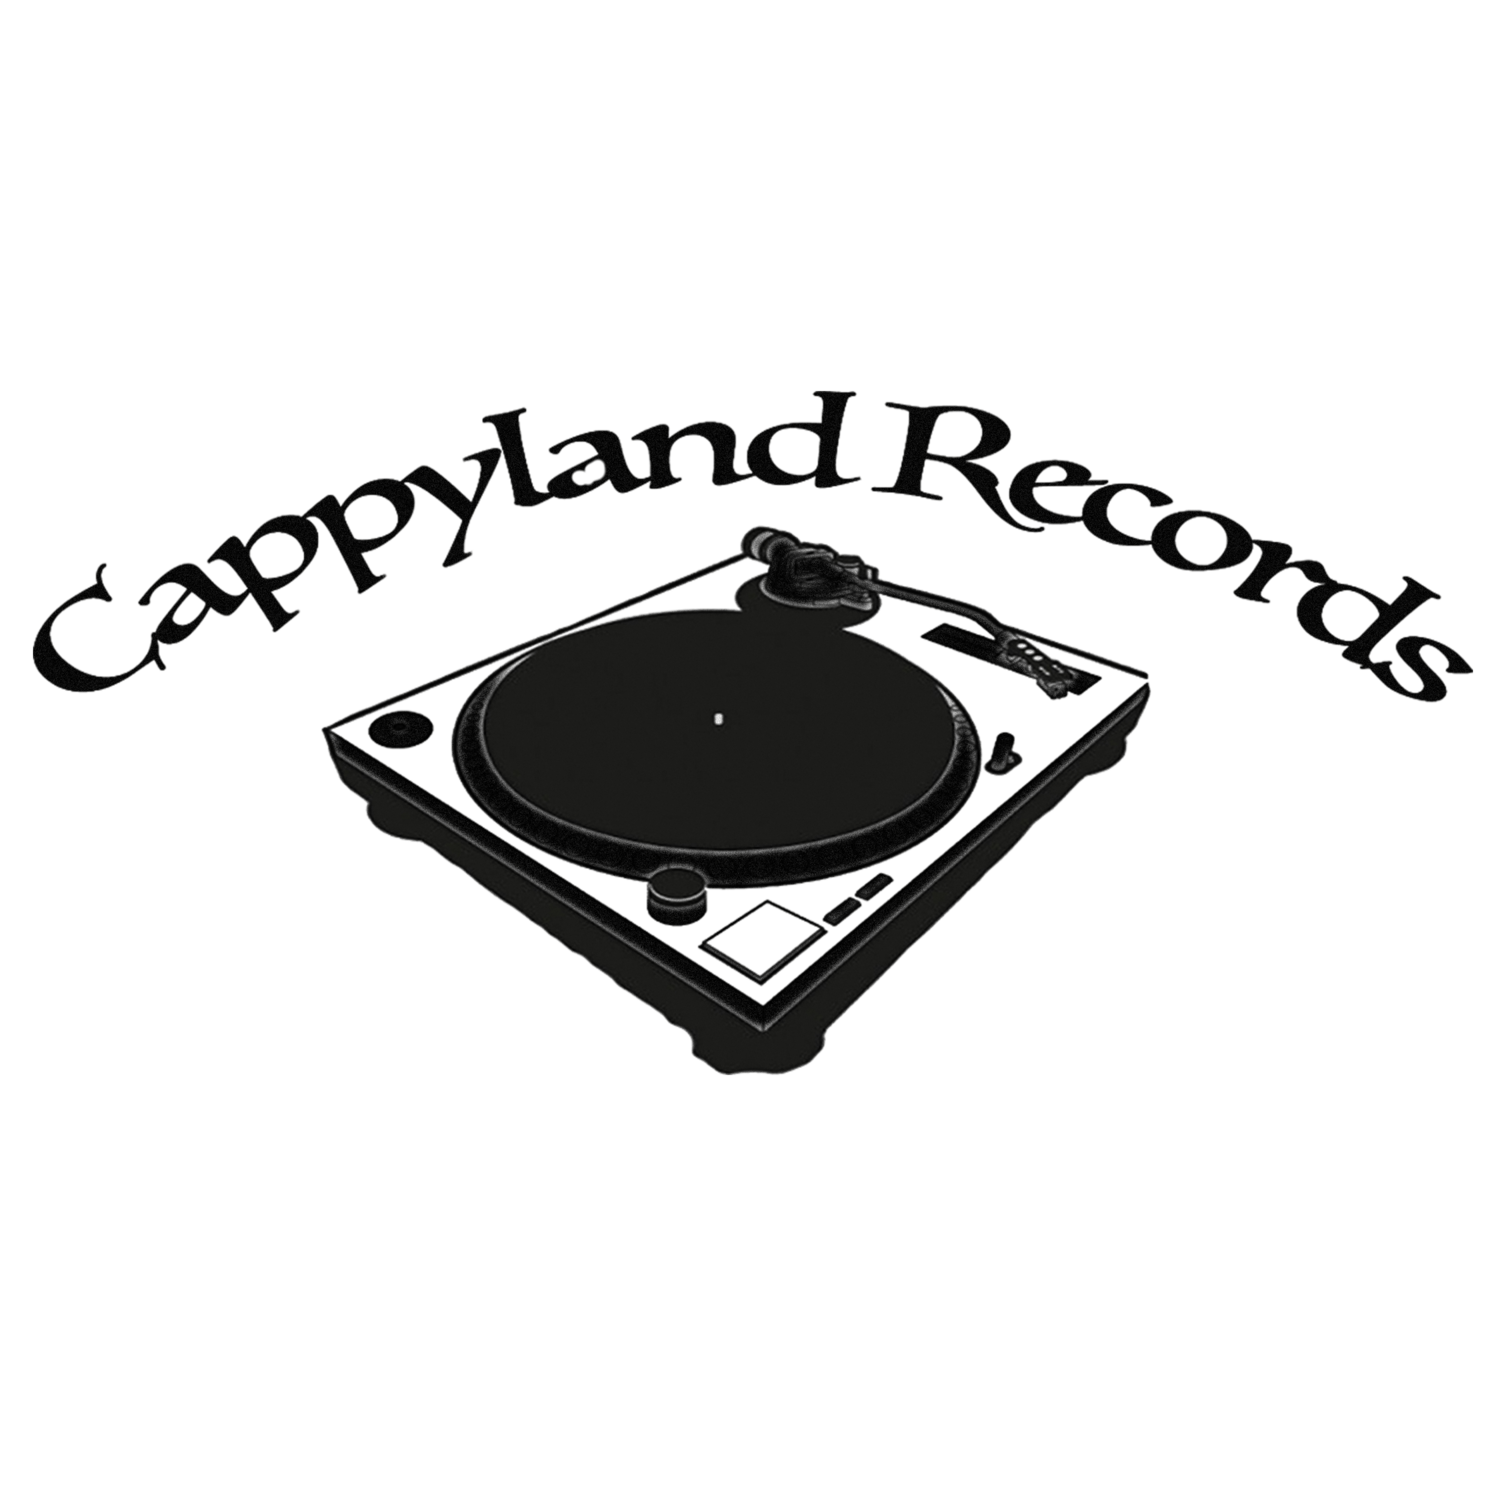 Cappyland Records